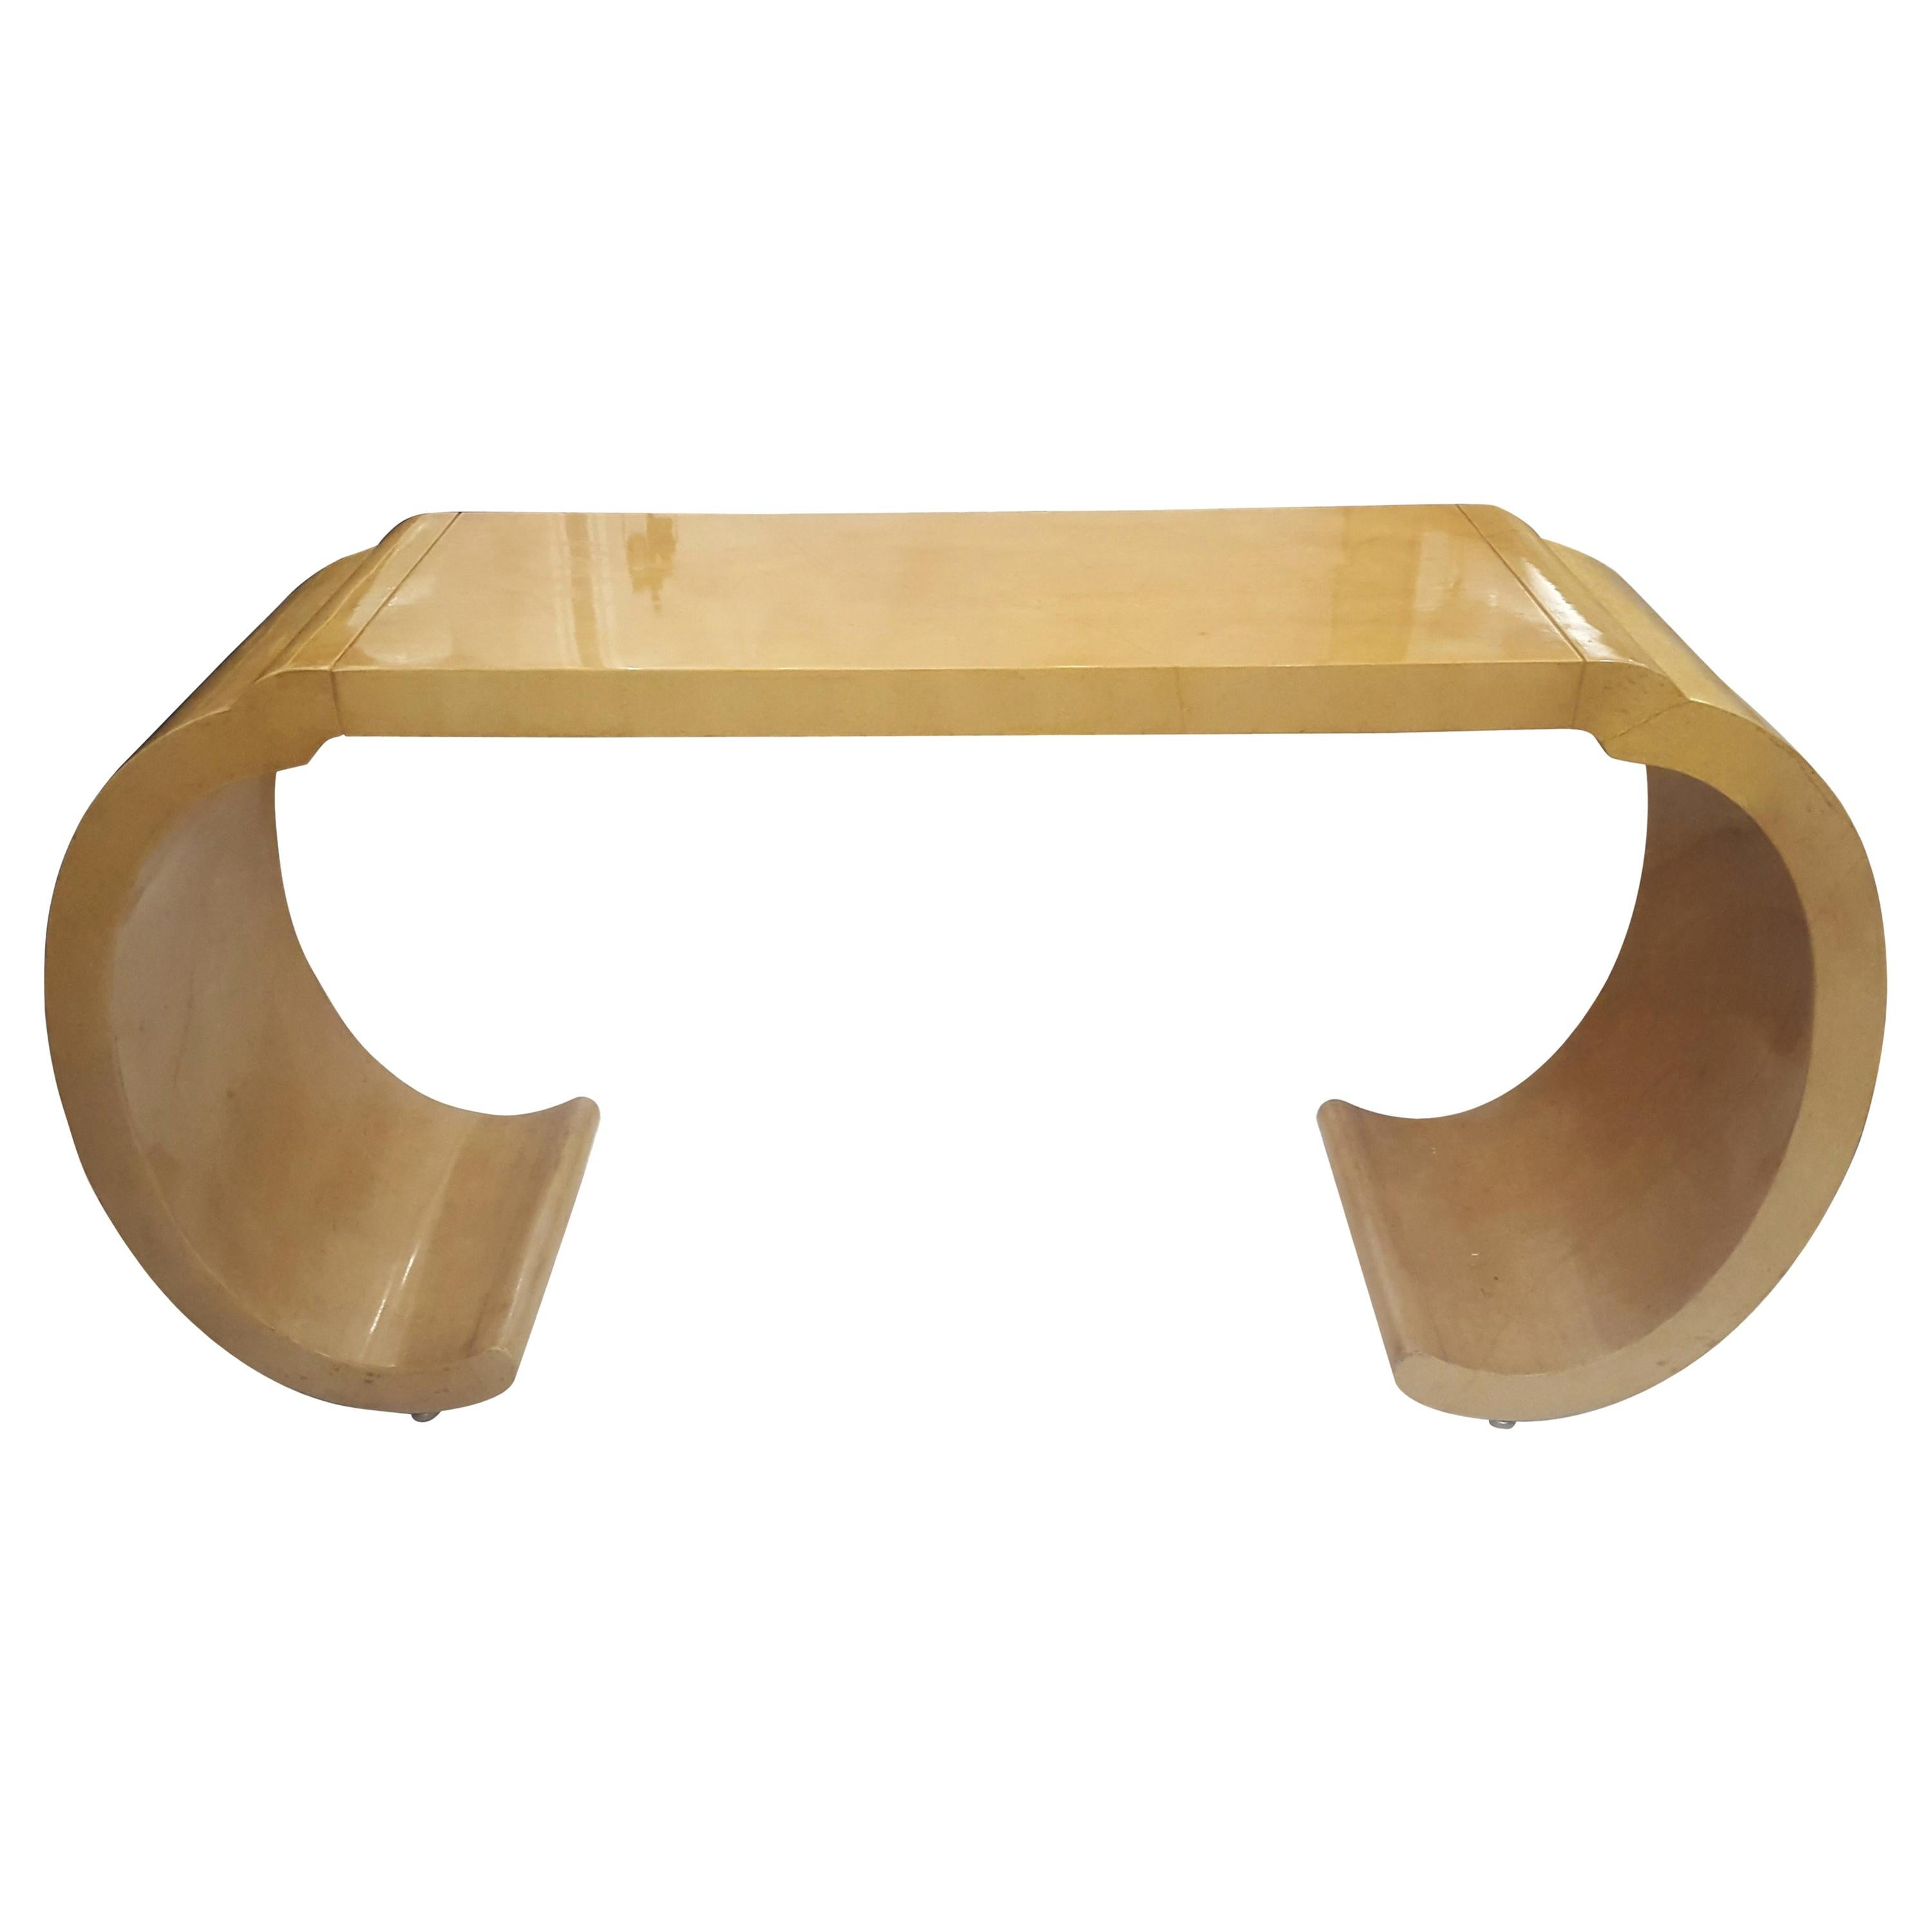 Sculptural Lacquered Console Table in the Karl Springer Manner